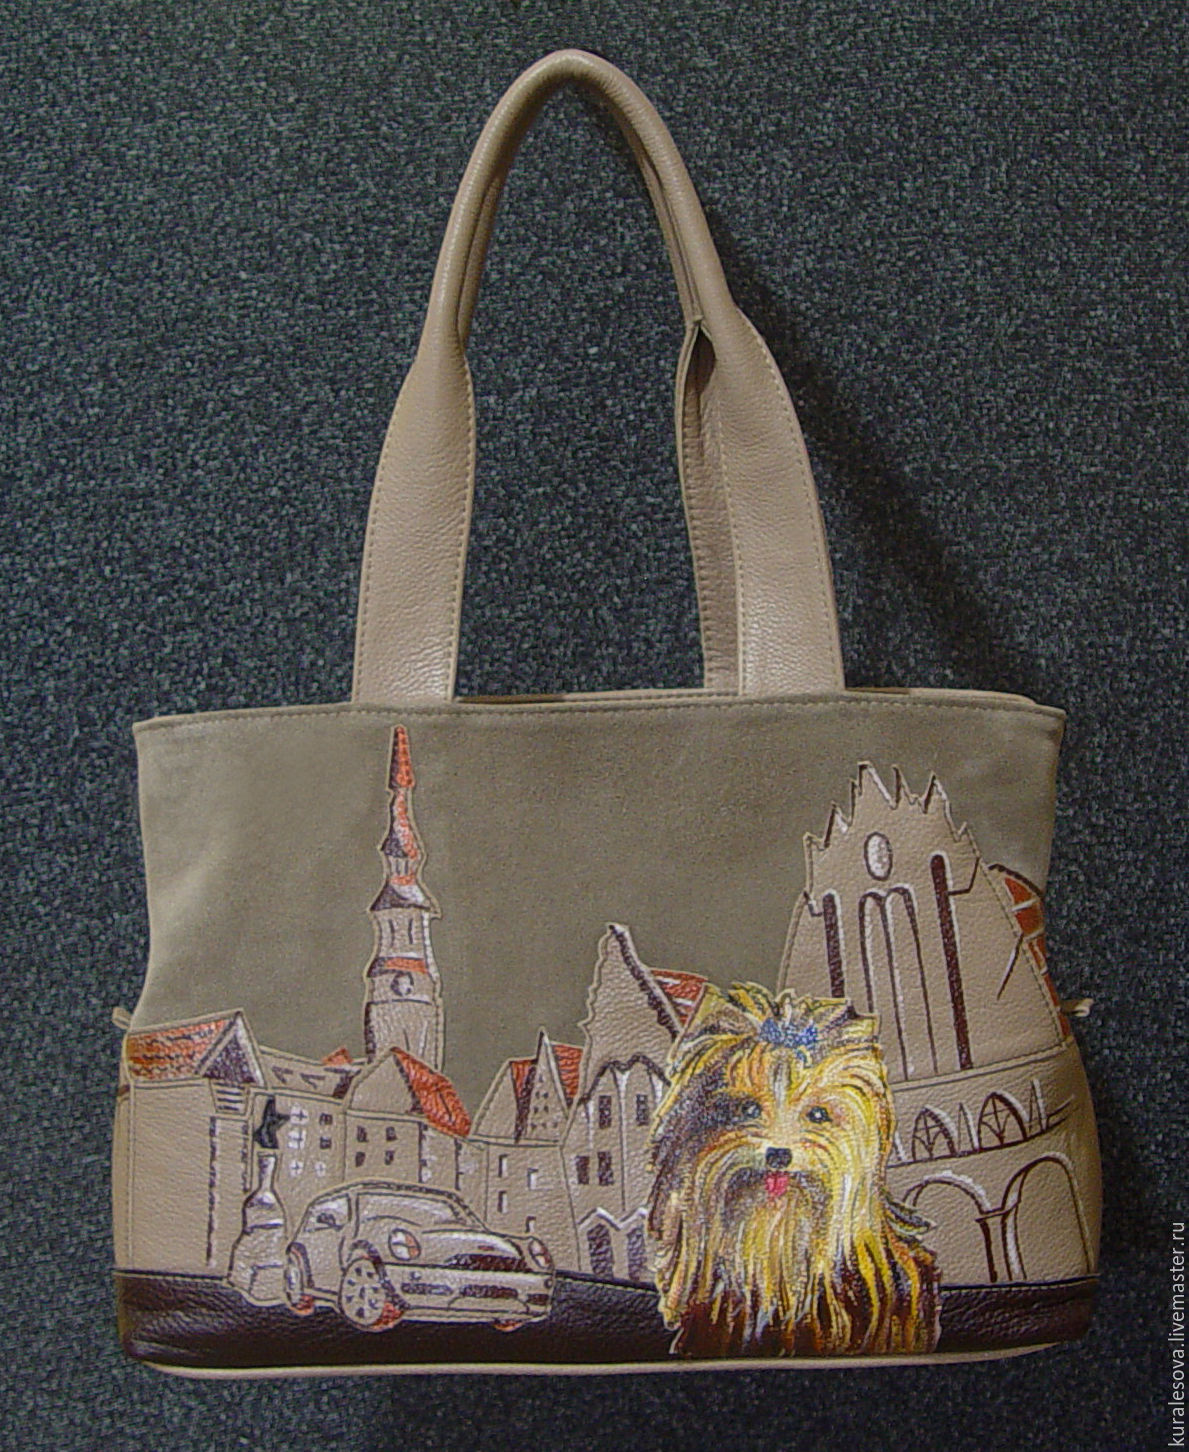 applique made of suede and leather, painted with acrylic